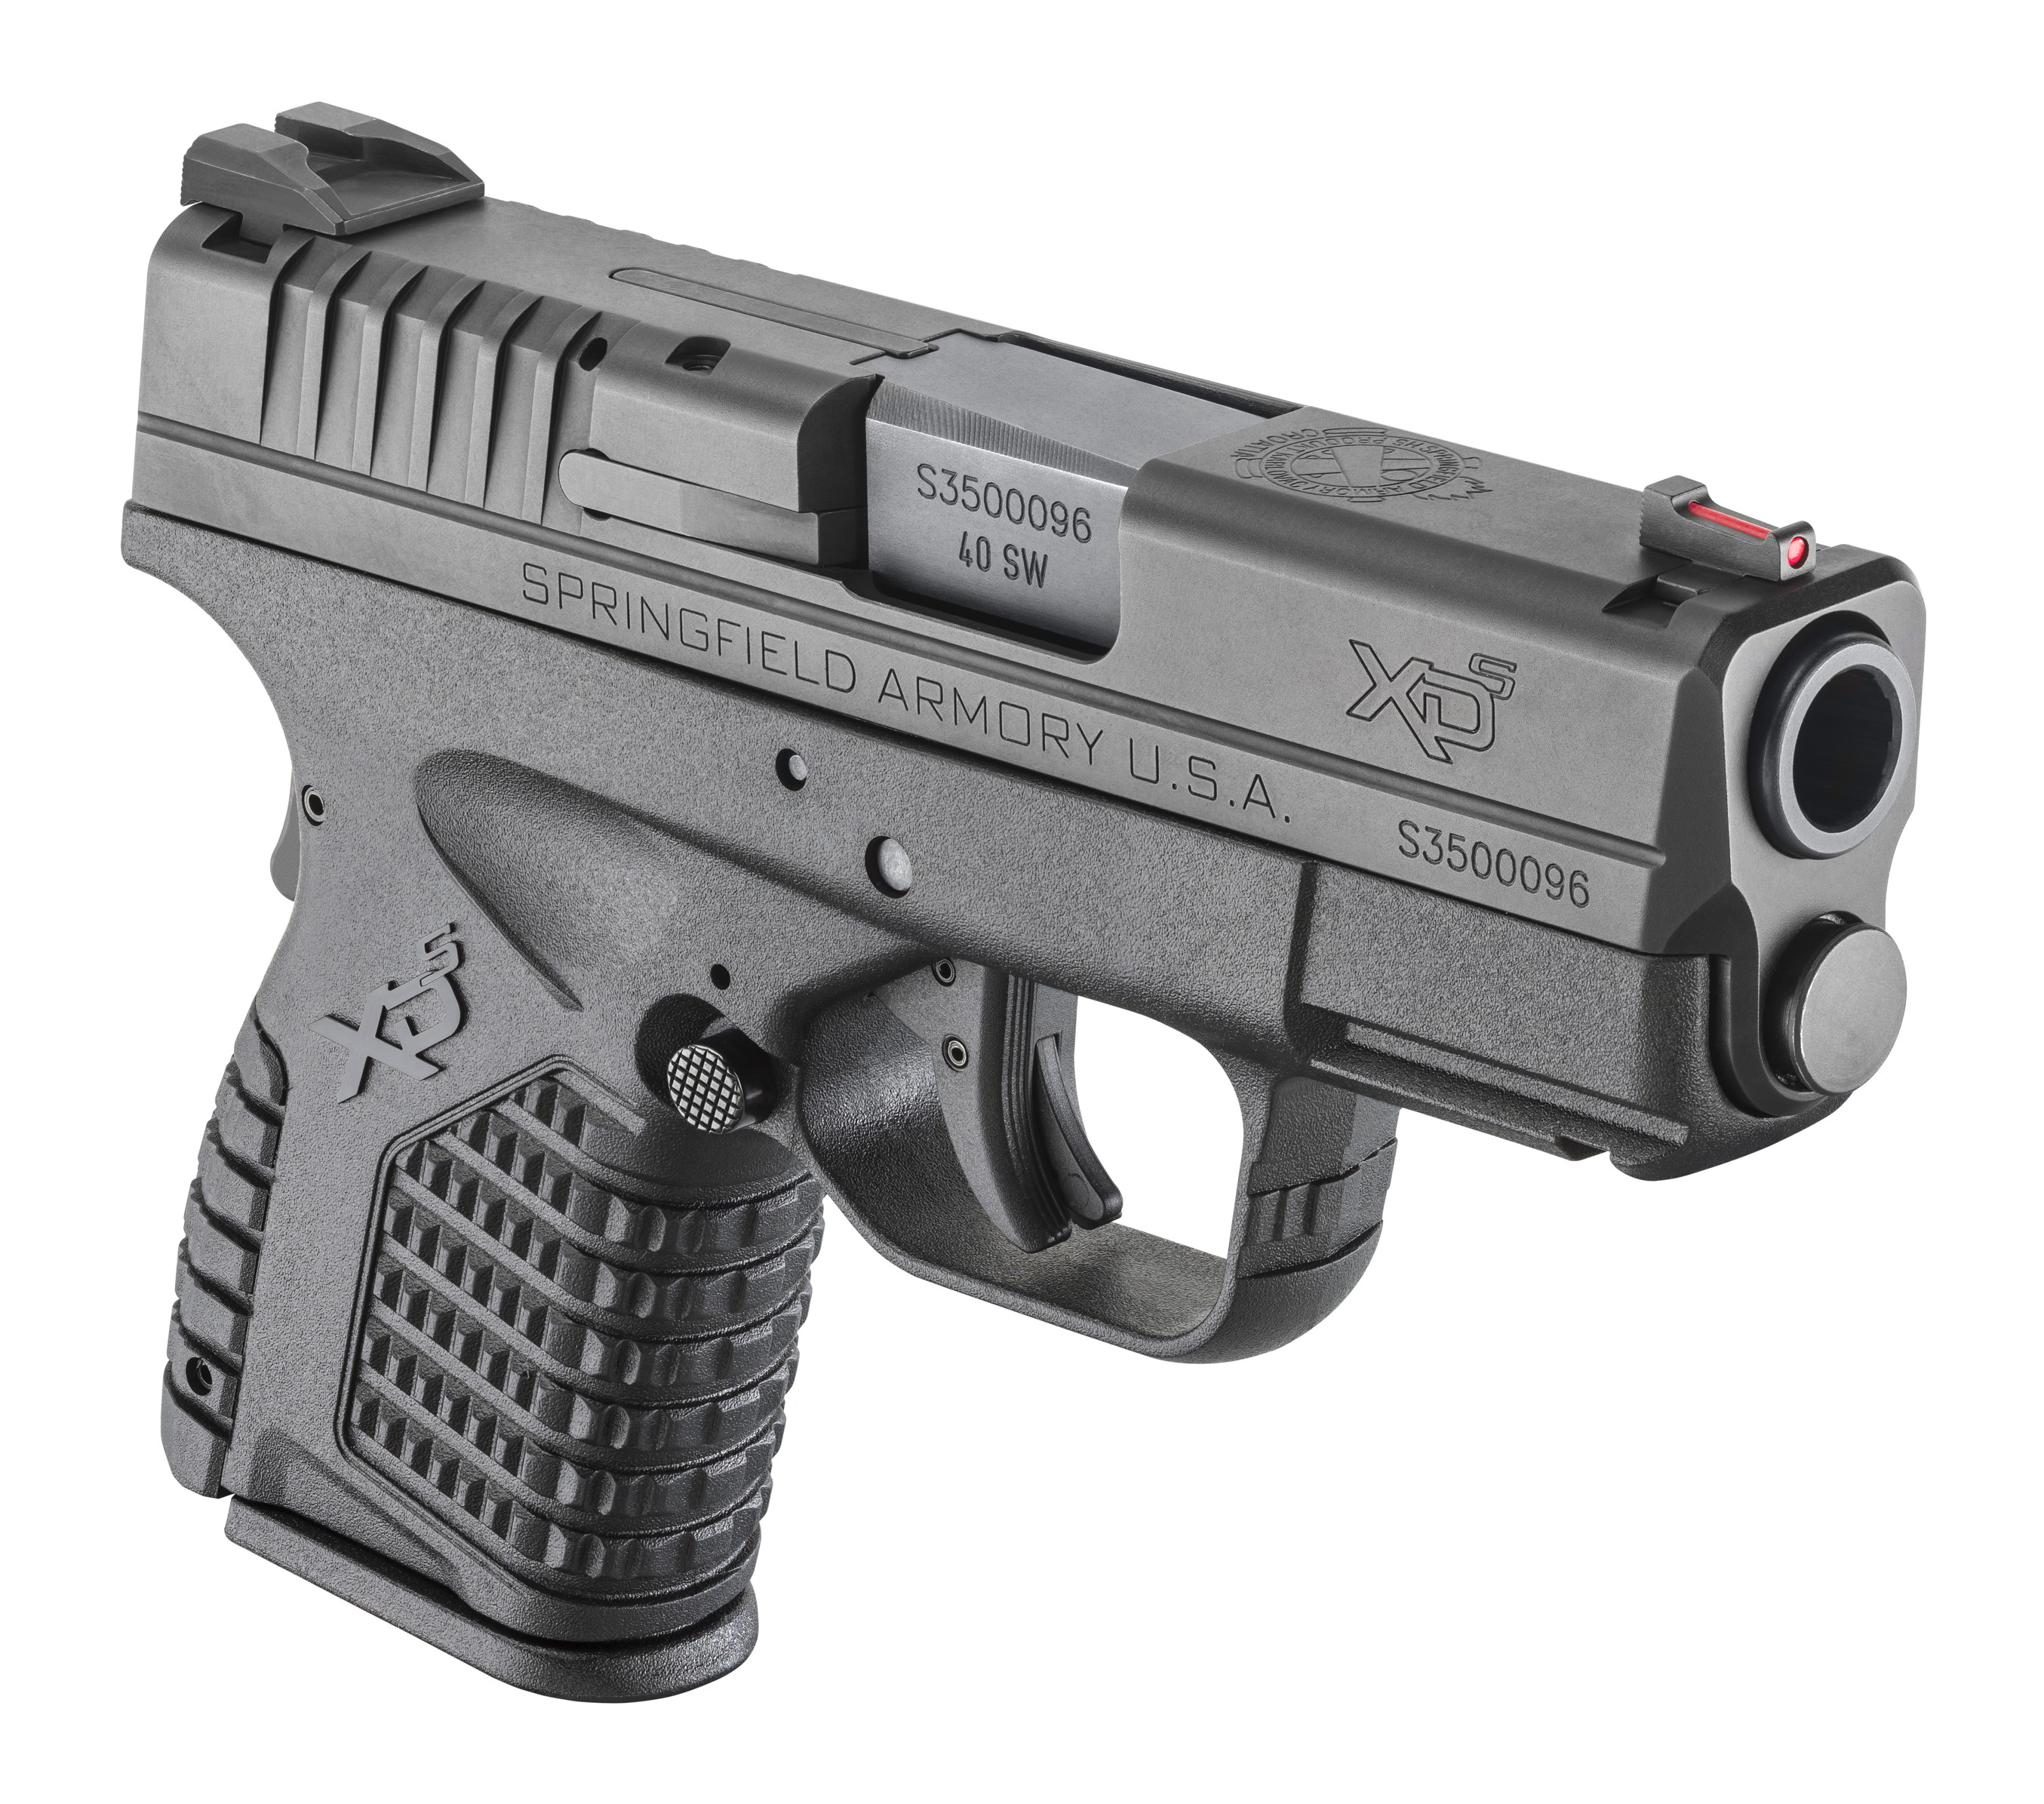 Press Release: Springfield Armory Announces The XD-S in 40 Caliber